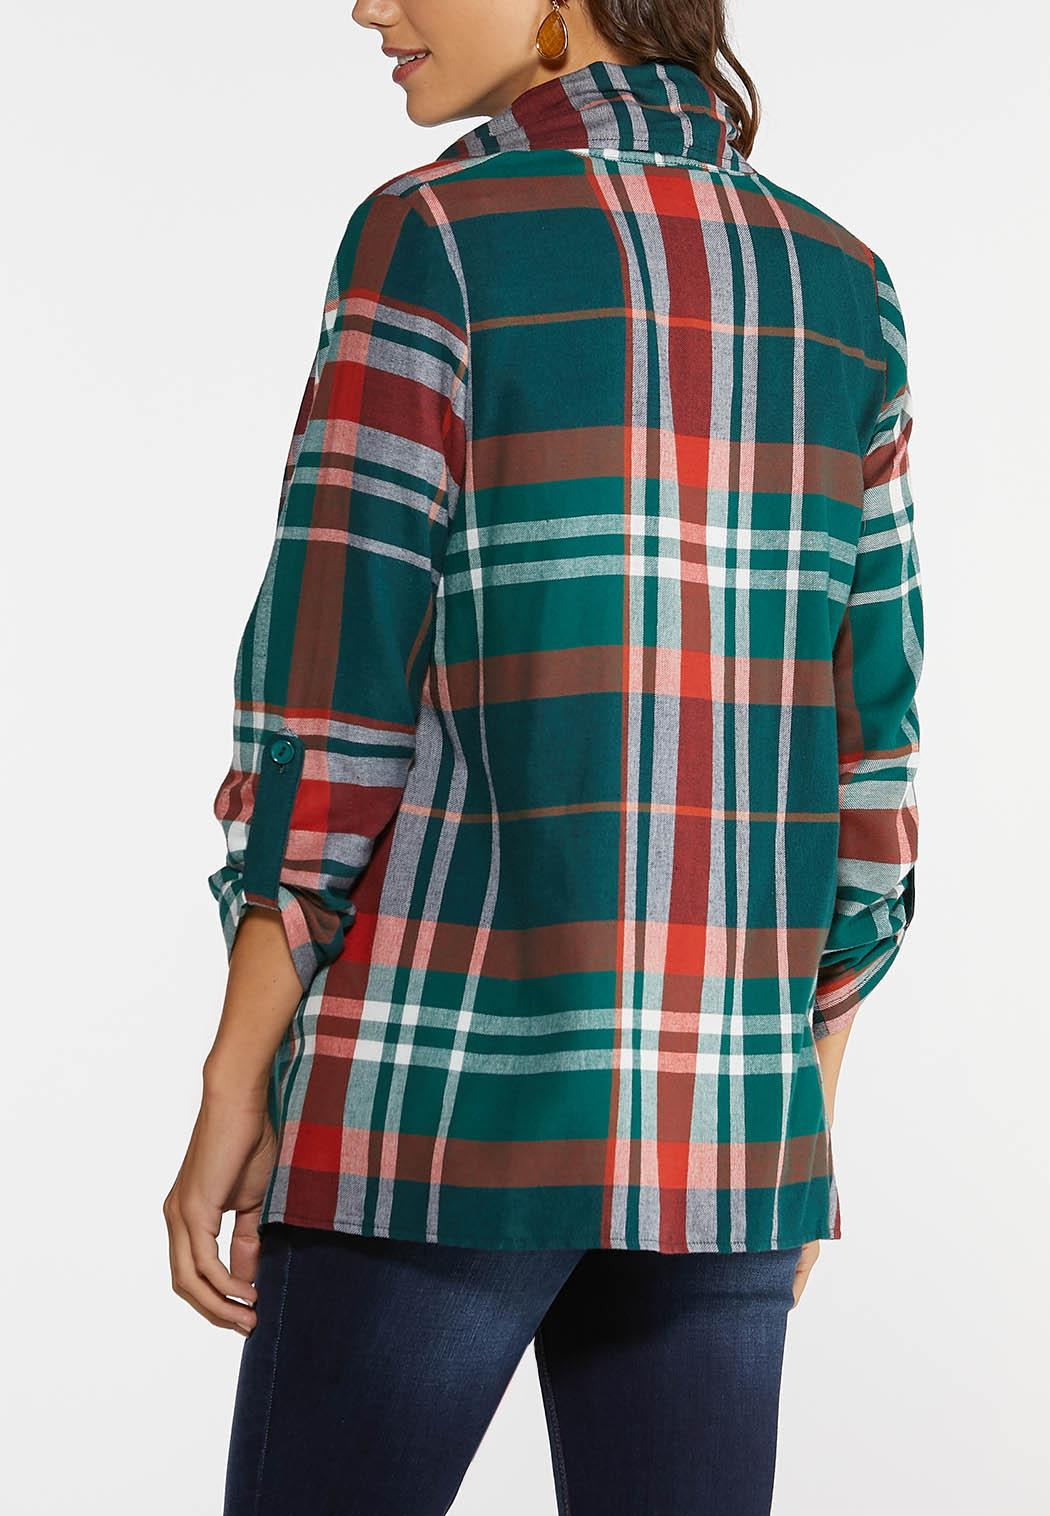 Plus Size Autumn Green Plaid Jacket (Item #43997144)